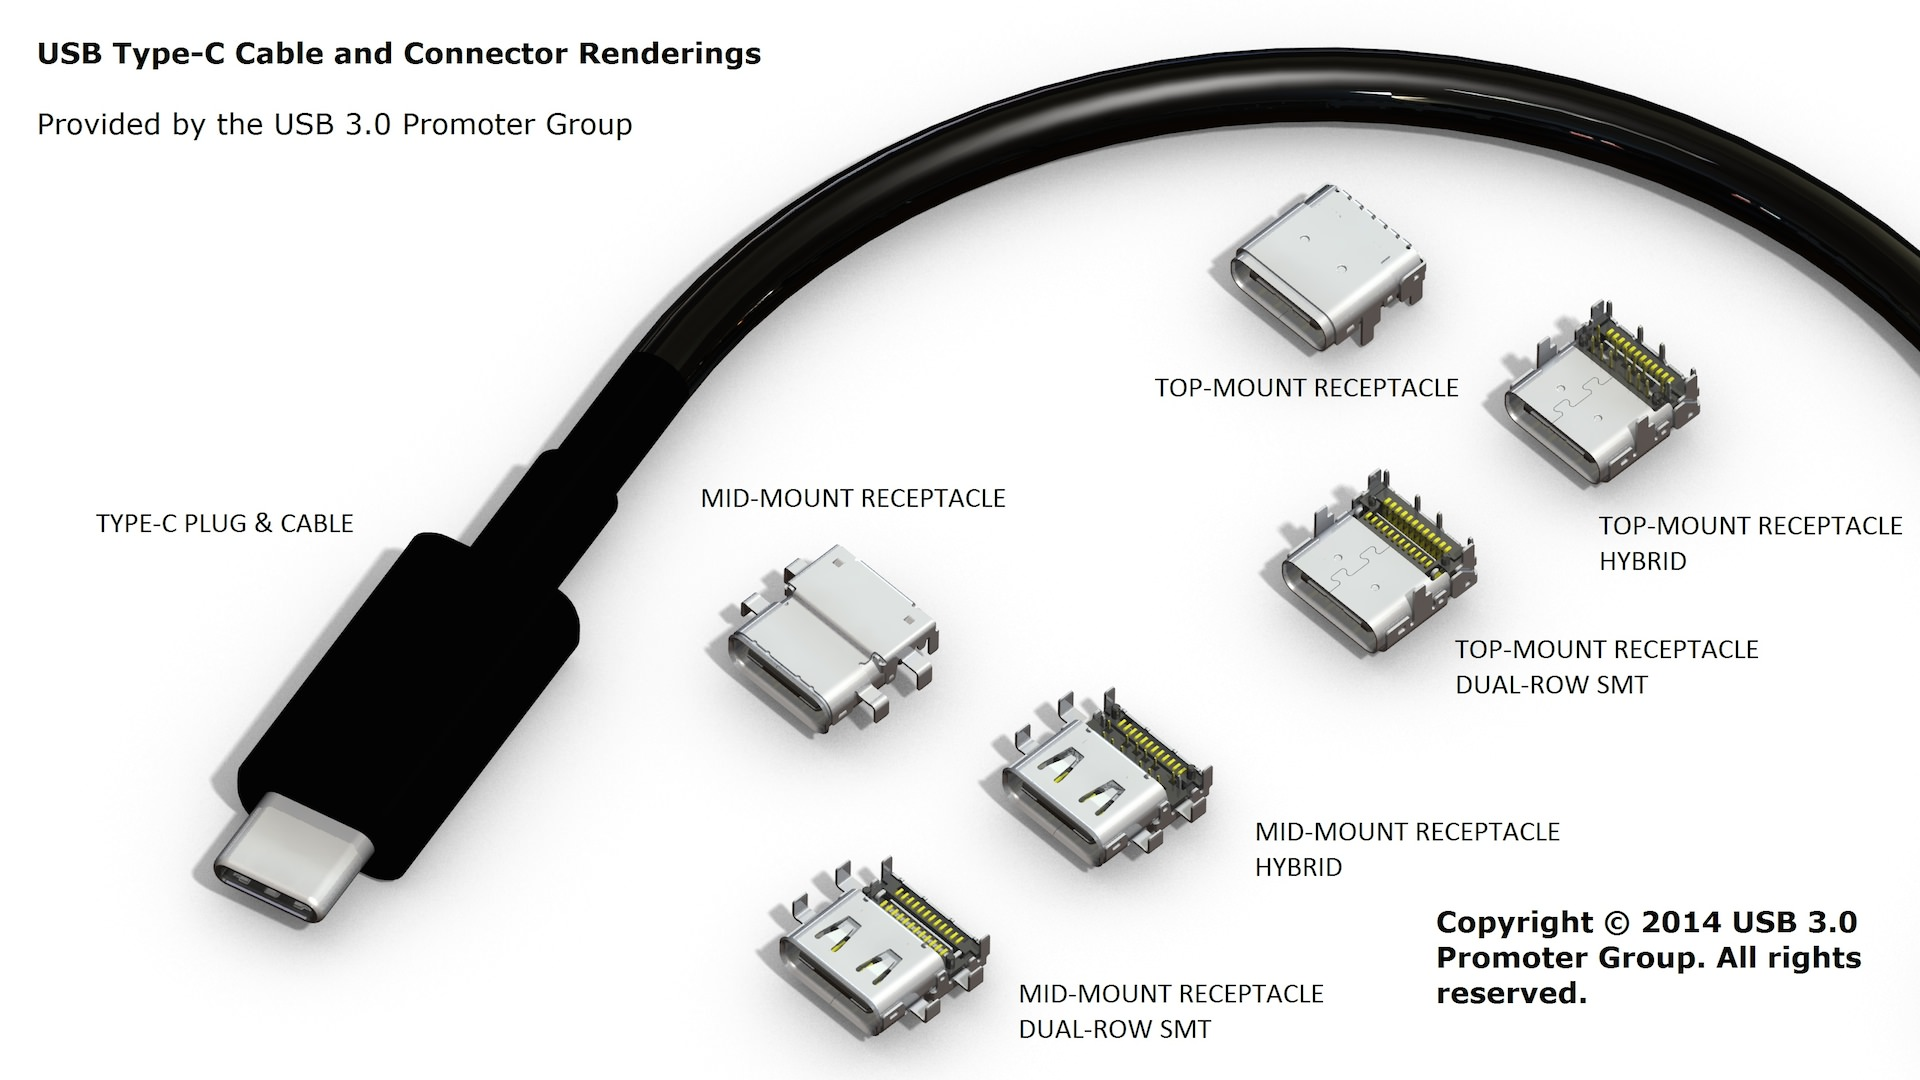 USB Type-C cable and connectors